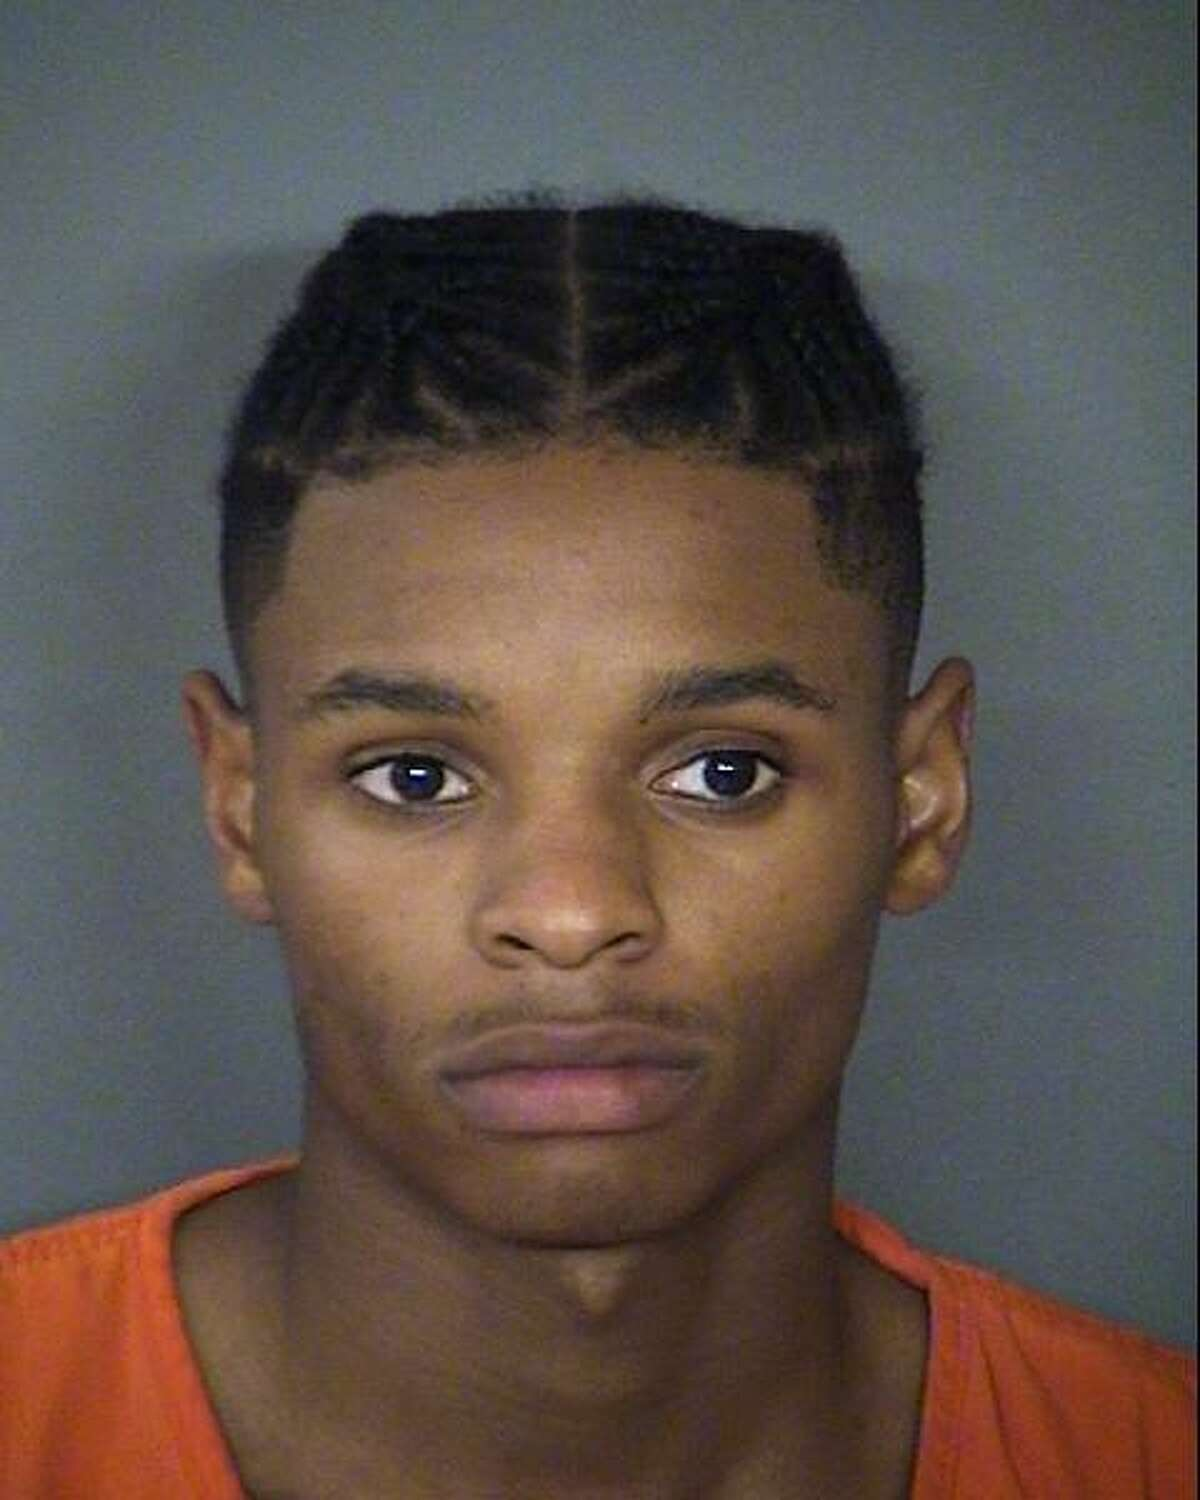 Anton Harris, 18, who was arrested Thursday at North Star Mall. He is facing four charges of sexual assault, one charge of attempted sexual assault and one charge of aggravated robbery.